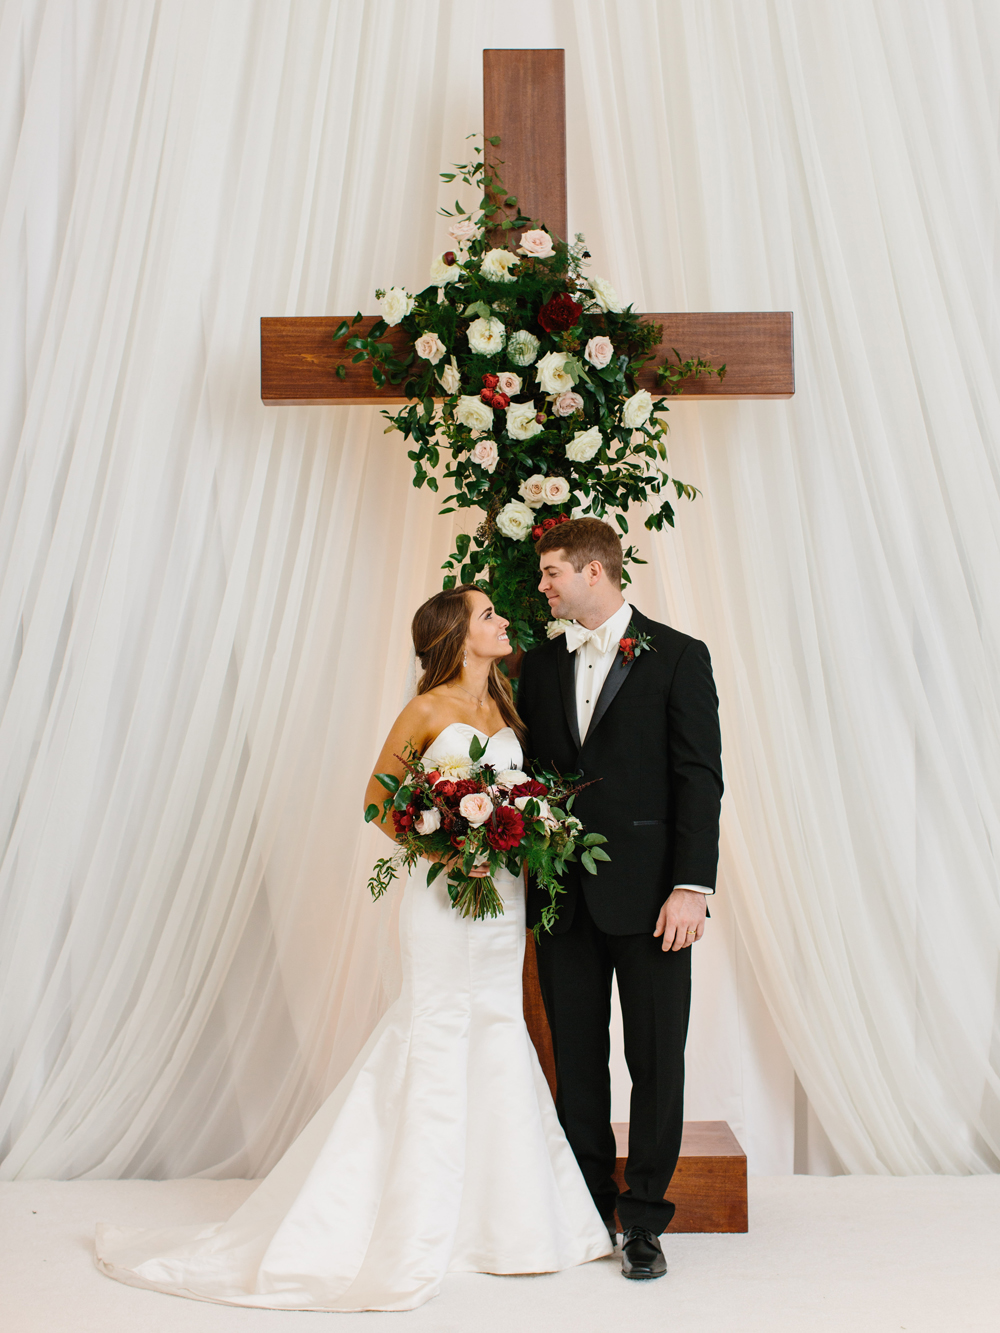 Large wooden cross for the ceremony backdrop with a lush floral spray of garden roses, dahlias, and greenery // Nashville Wedding Floral Design